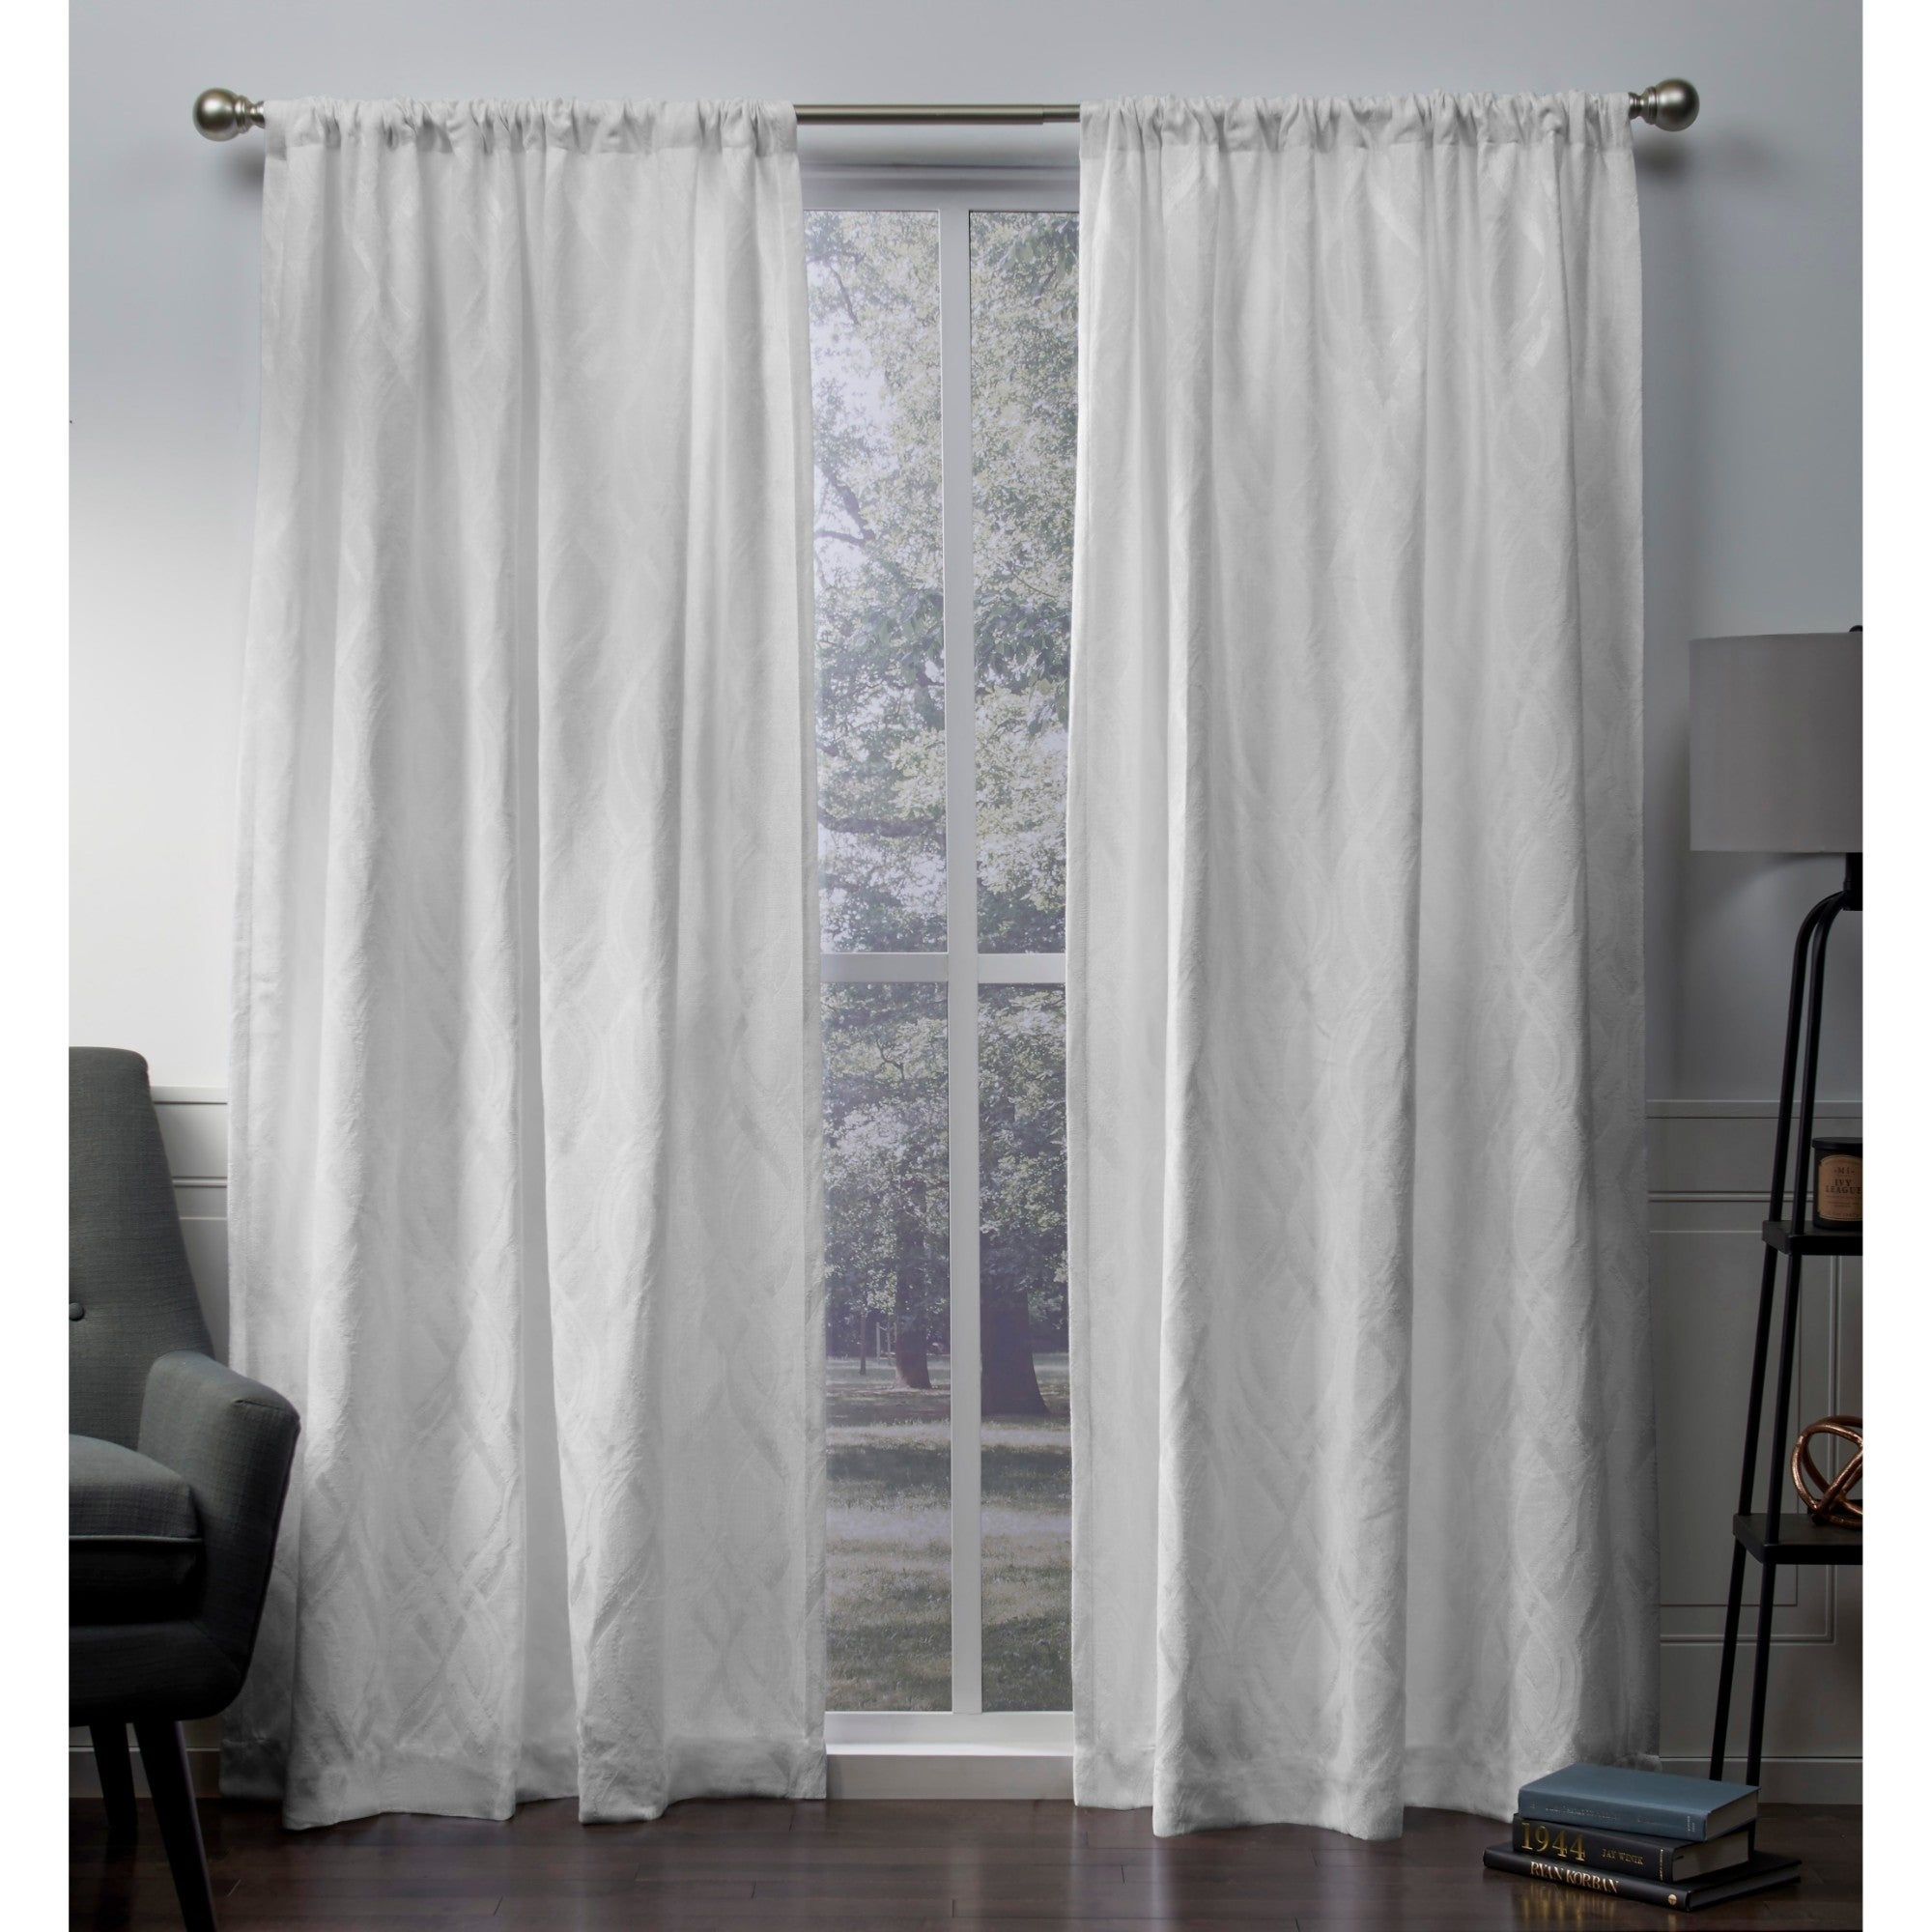 Ati Home Elena Chenille Rod Pocket Top Curtain Panel Pair With Infinity Sheer Rod Pocket Curtain Panels (View 2 of 20)